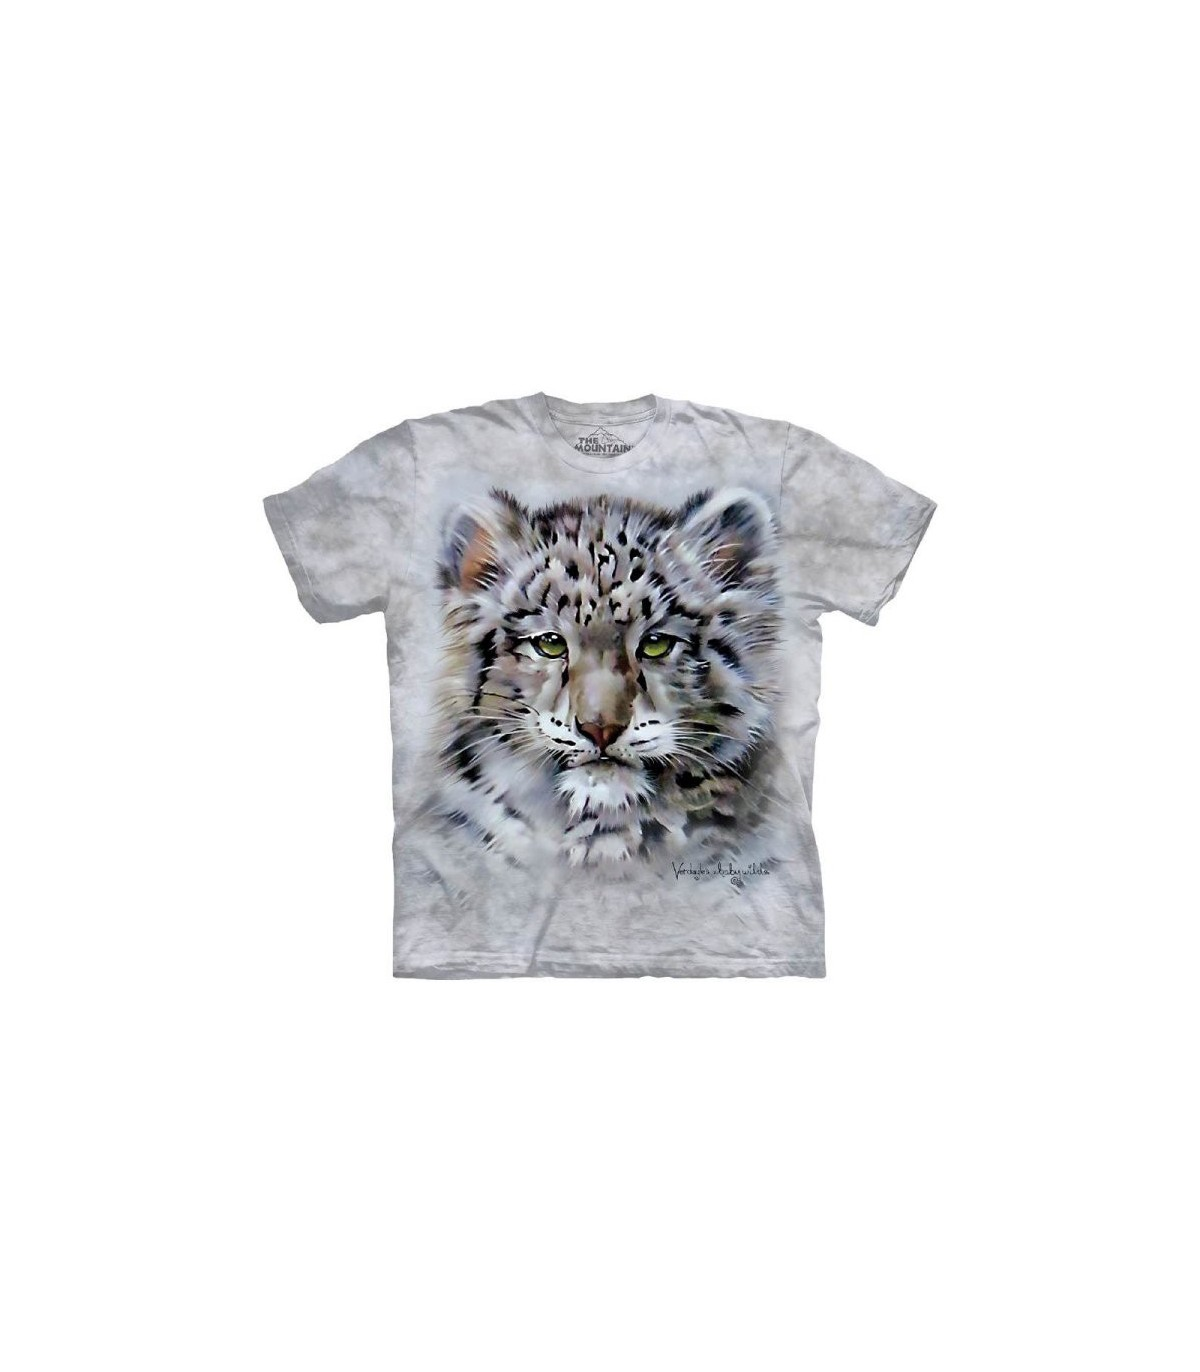 1917a8bbd95a The Mountain Unisex Baby Snow Leopard Animal T Shirt